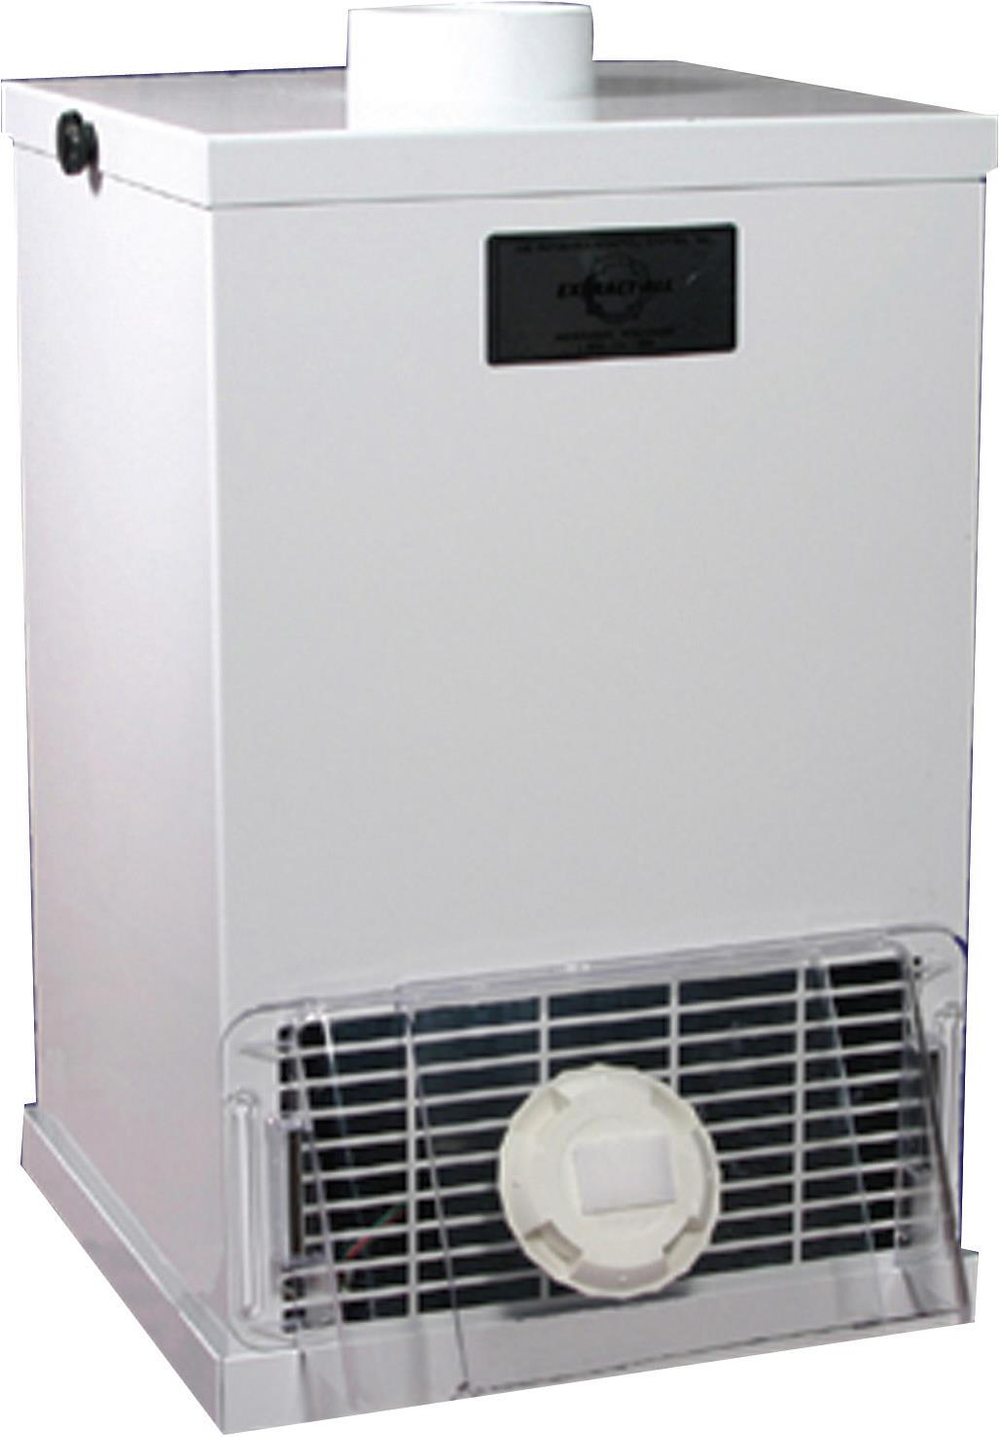 <p><strong>2004 Favorite Ventilation System/Equipment: AIR Impurities Removable Systems Extract-All Model S031 Air Purification System</strong></p> <p>2nd: Edsyn Inc. Fuminator</p>